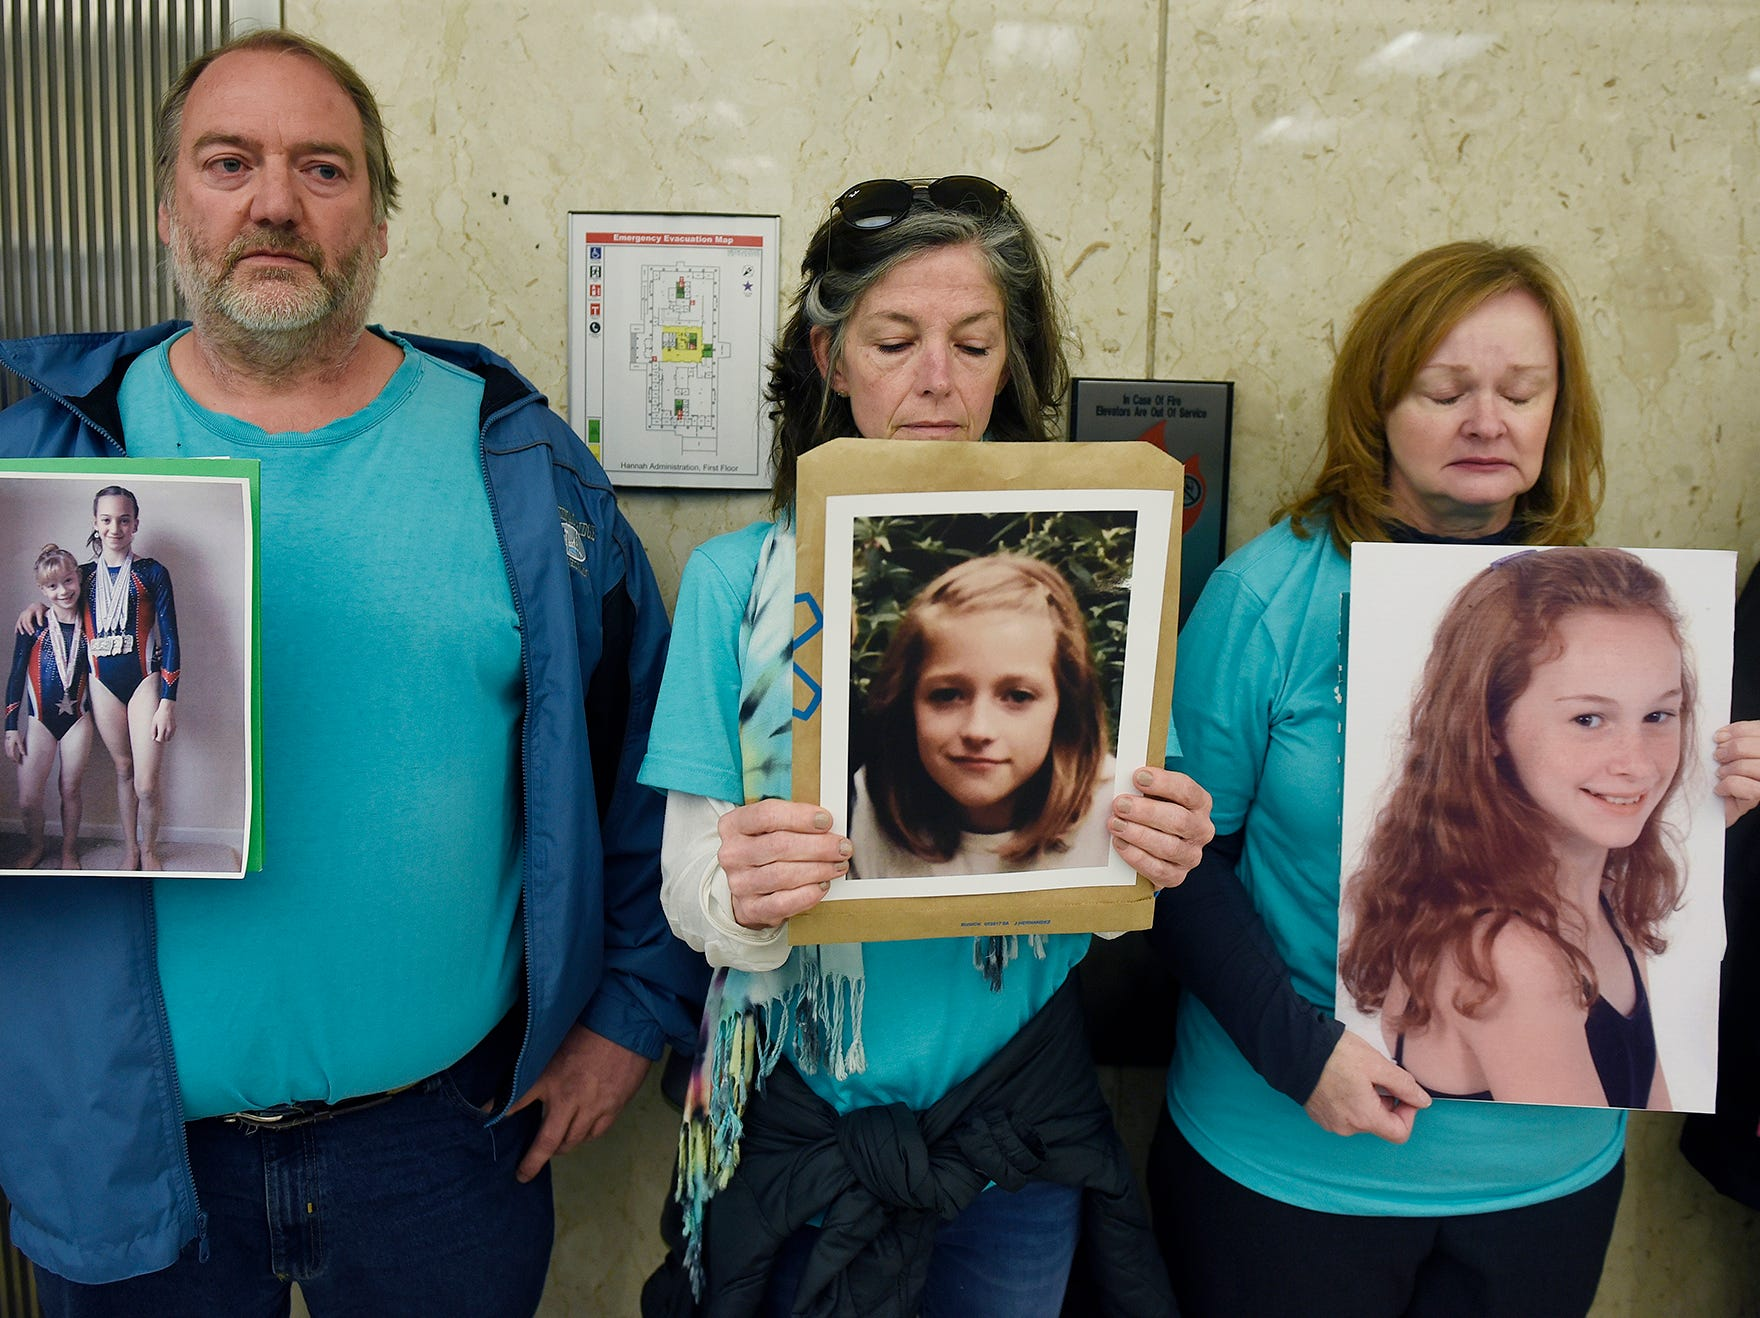 Parents of survivors, from left,  Glen Black of Pinkney, Tammy Bourque-Stemas of Dearborn and Valerie von Frank of Okemos, stand by the elevator waiting for Michigan State trustees to enter the Hannah Admin Building in East Lansing on April 13, 2018. The protesters were demanding the trustee's resignations over the institution's failure to protect women and girls from Dr. Larry Nassar's sexual assaults.